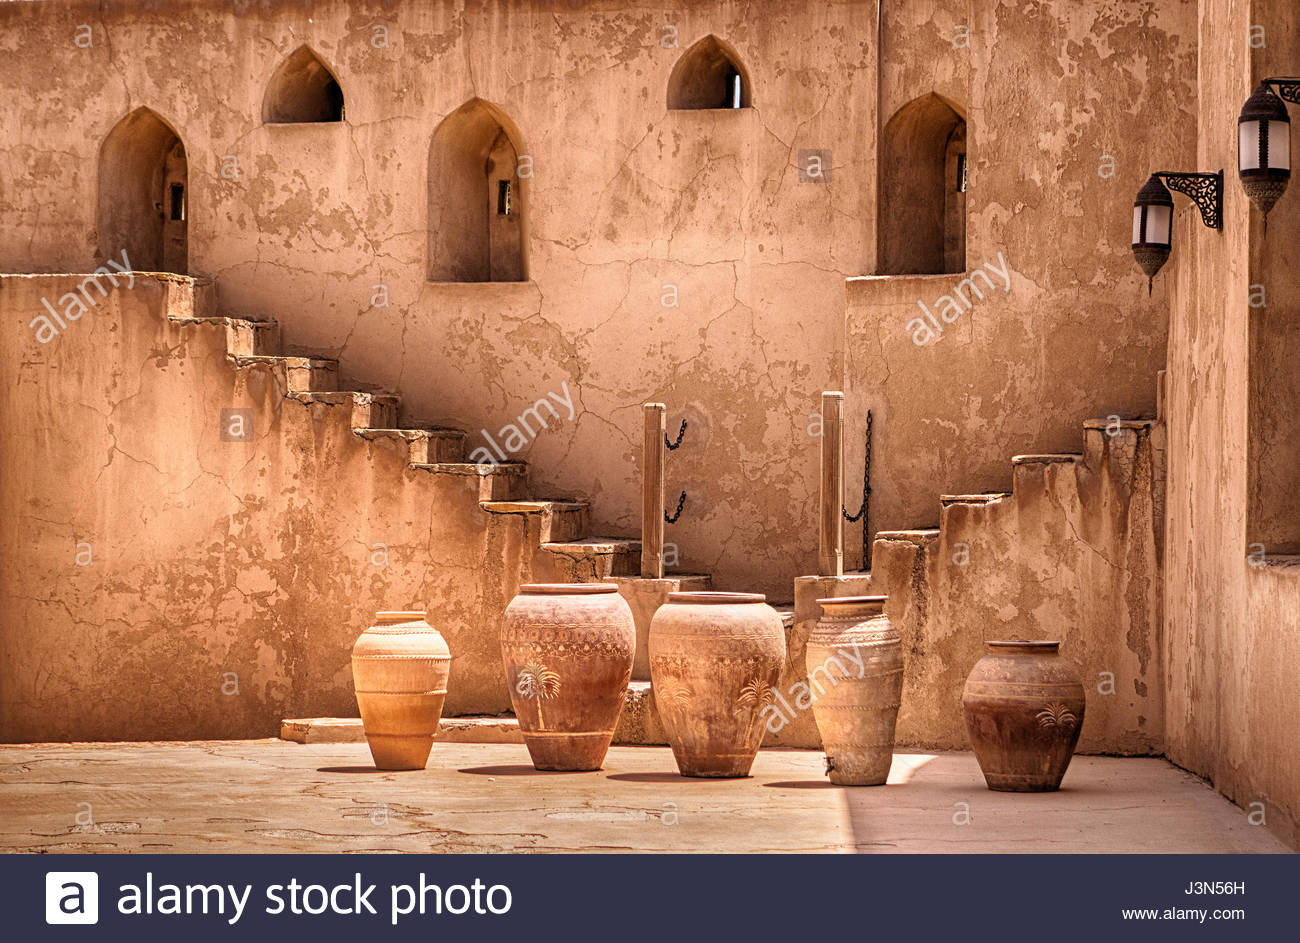 Bahla Potteries Bahla & Jabrin, Jabreen Castle Courtyard - Old pottery made in Nizwa and Bahla ...